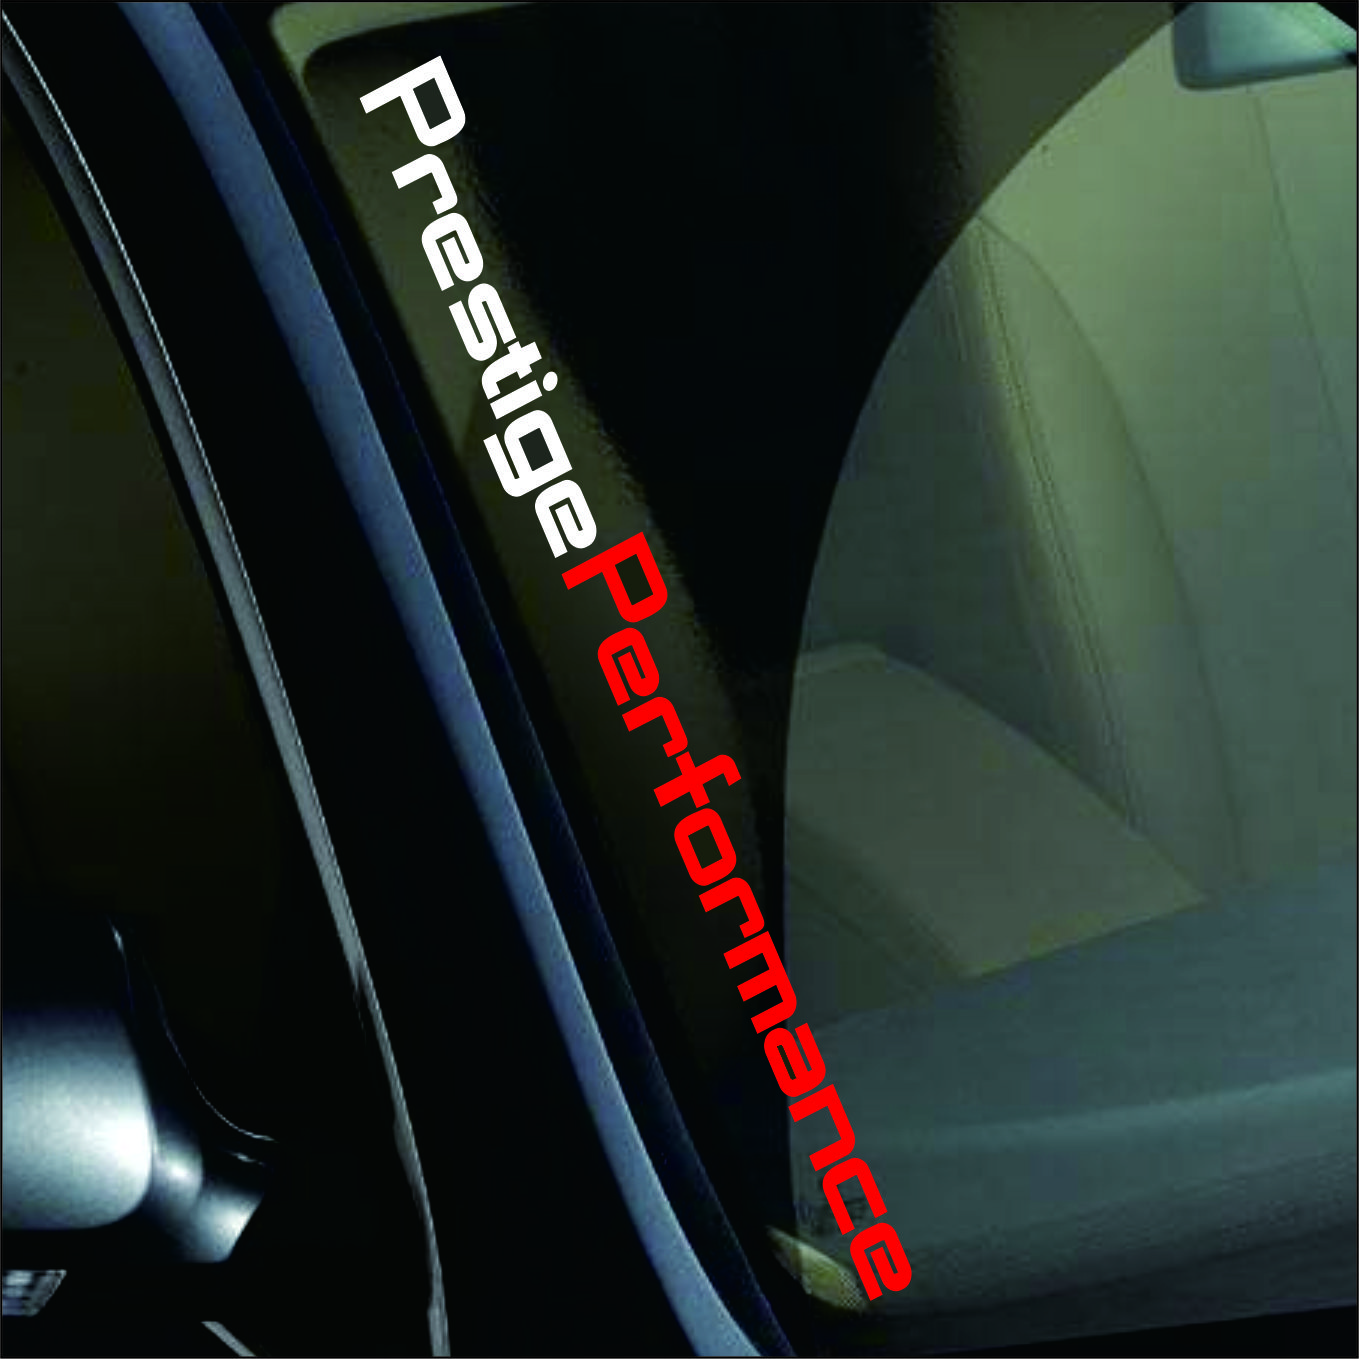 55 X 6CM Red/White Prestige Performance Graphic Front Windshield Decor Stickers Auto Door Customized Decal Sport Styling